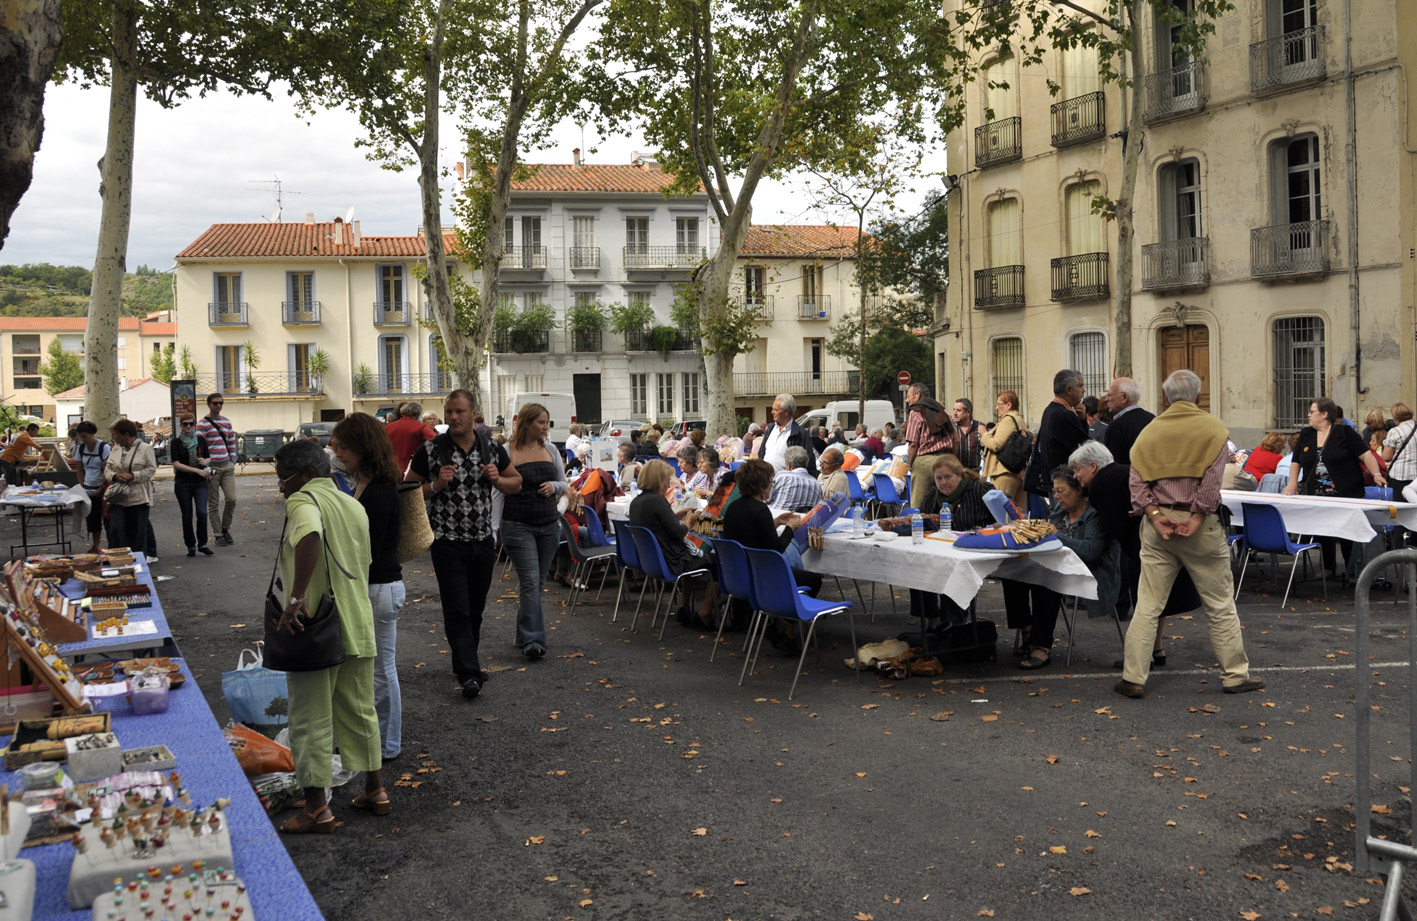 Lacemakers in a square in Céret during the Fall festival.